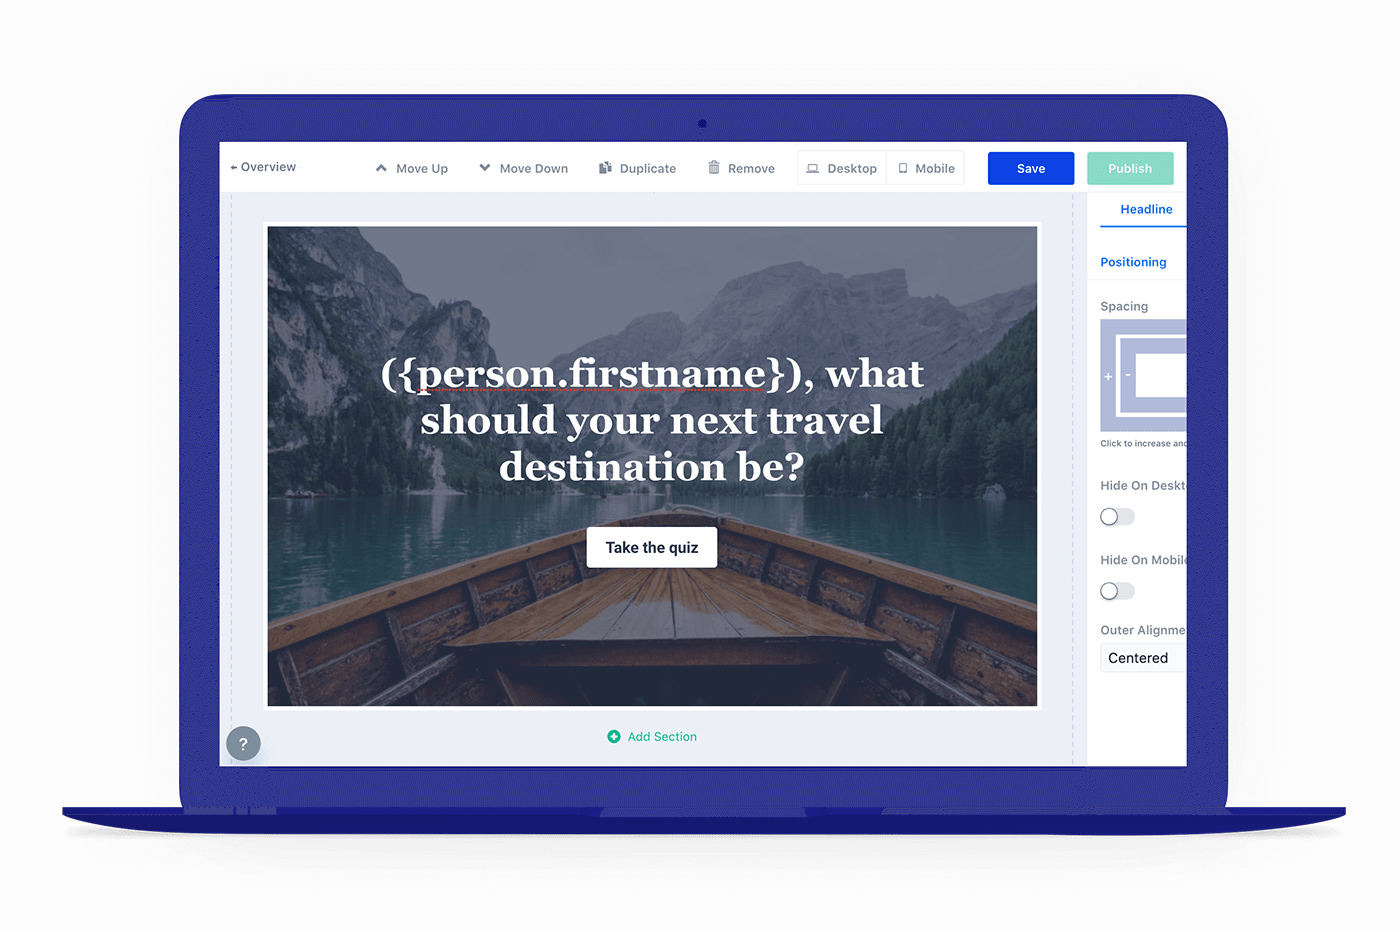 Use merge tags and team profiles to personalize your lead quizzes